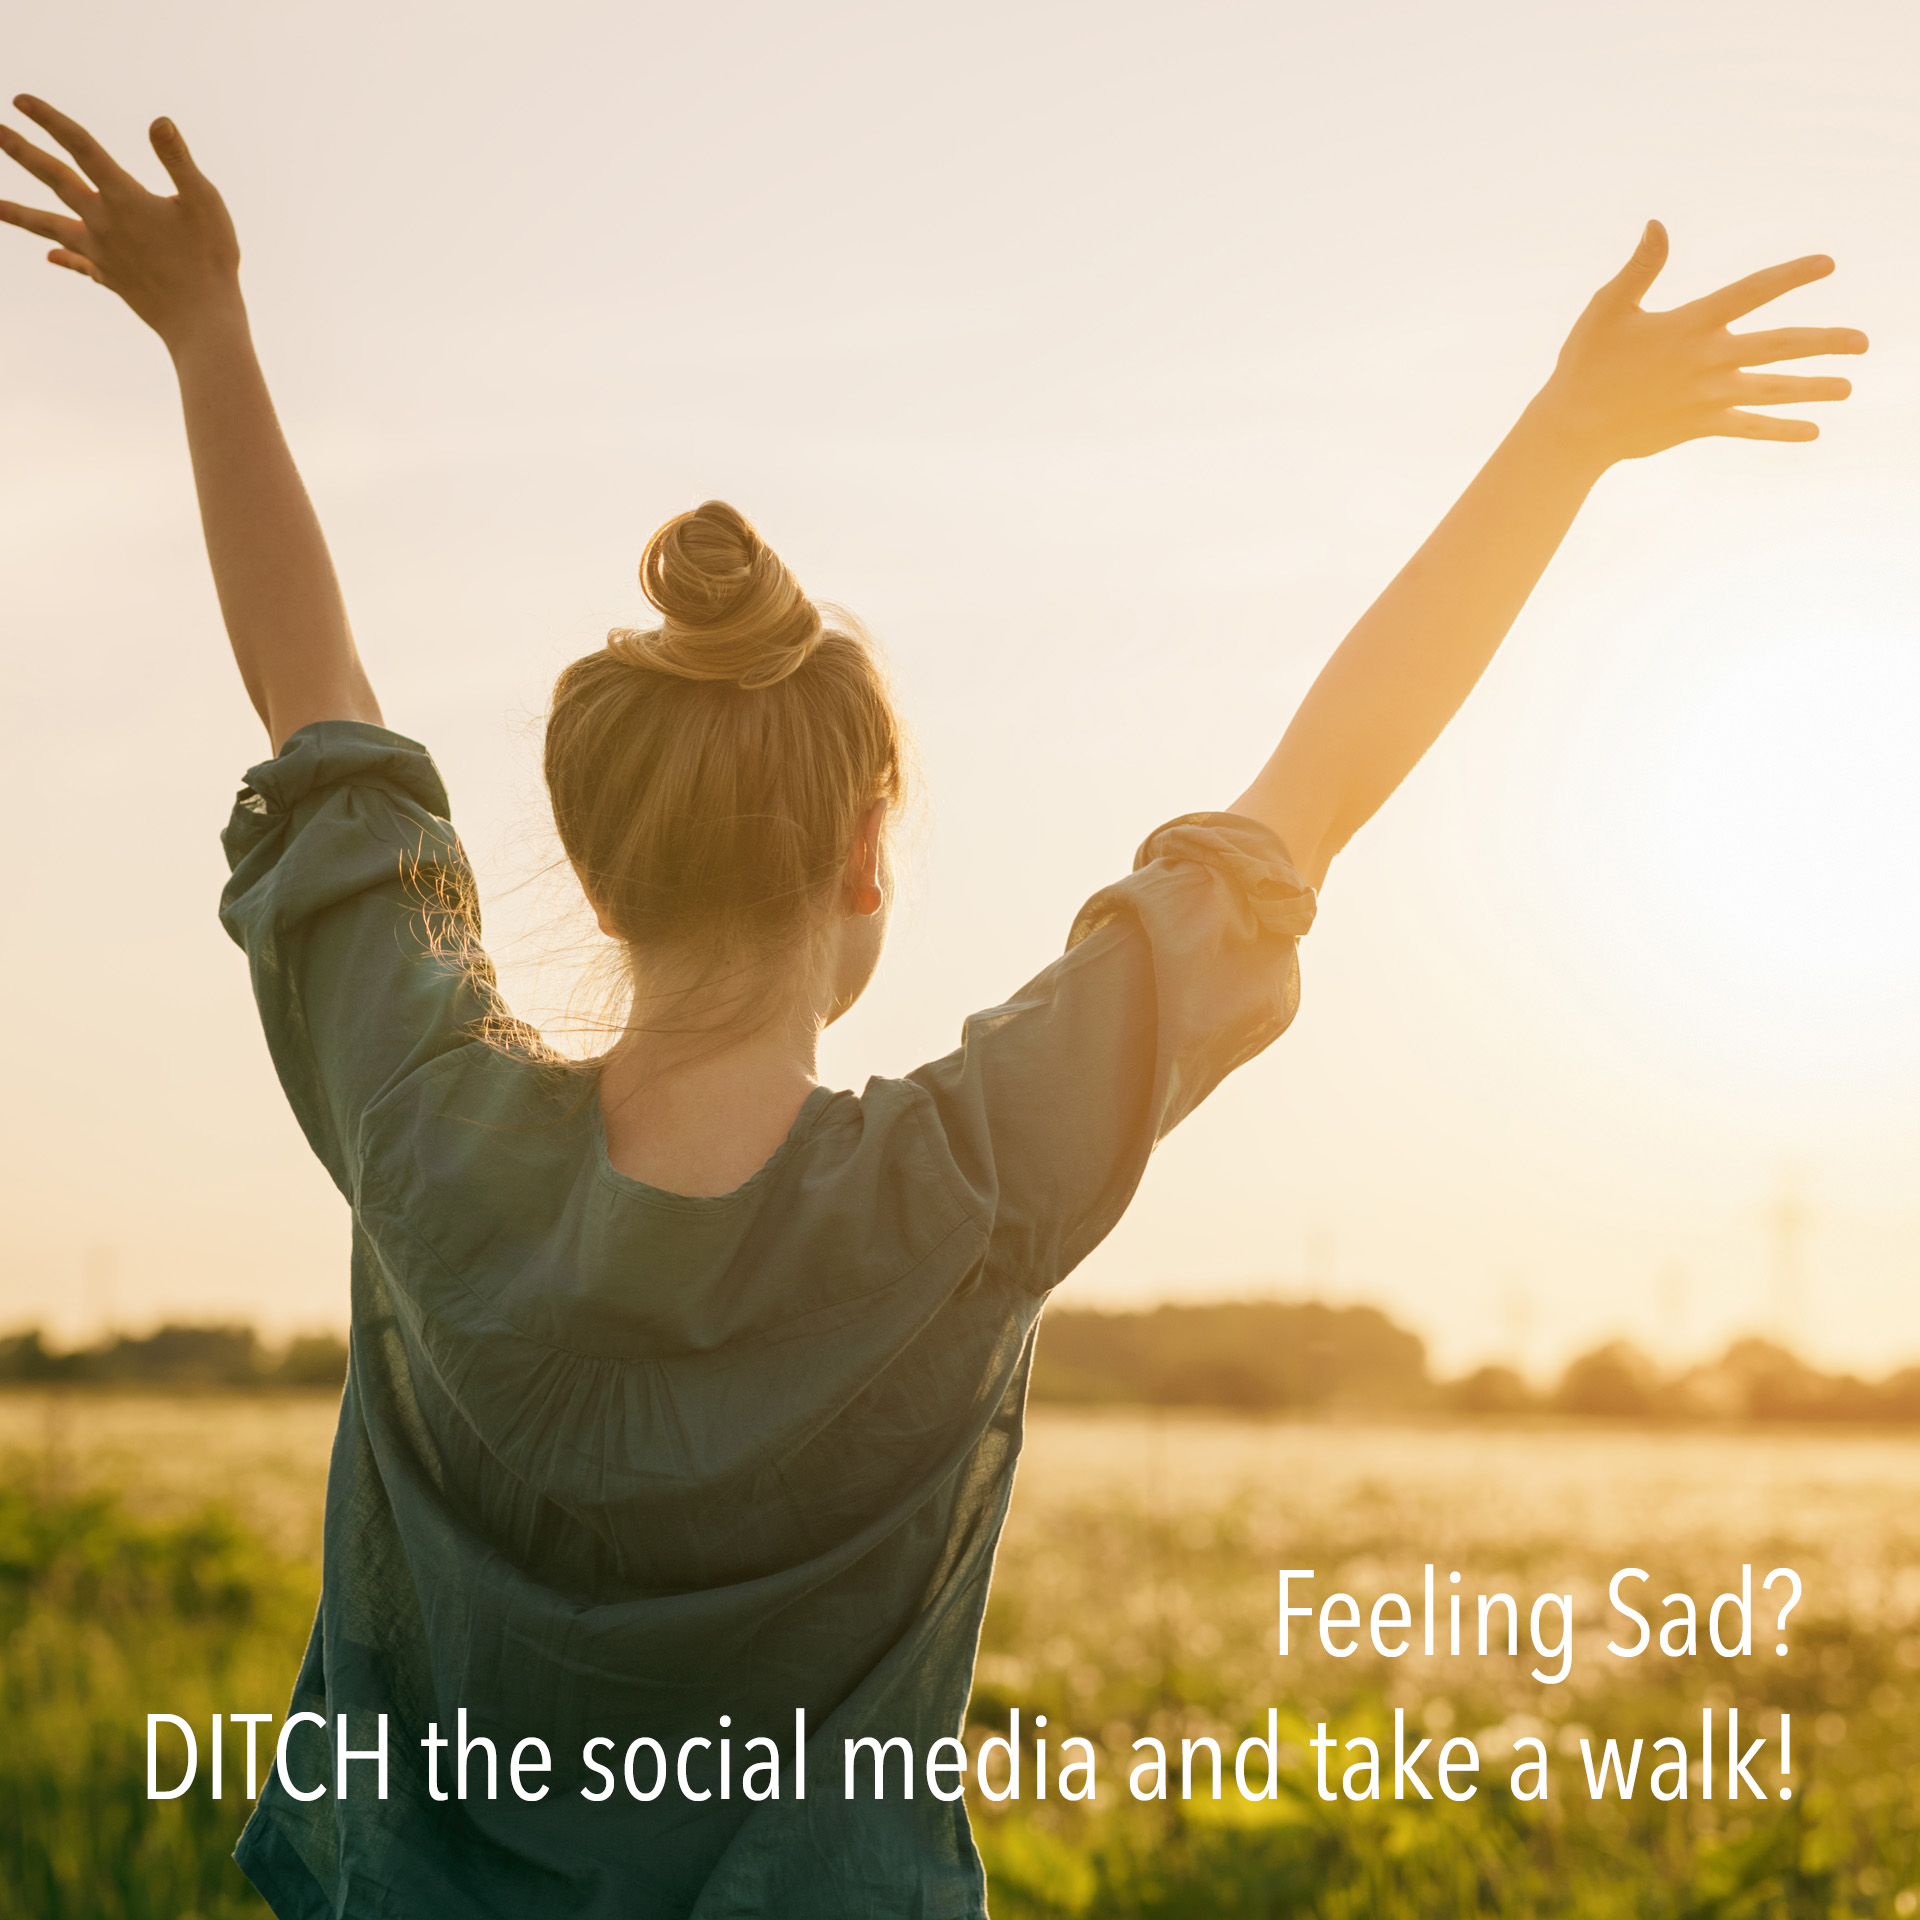 Feeling Sad? Ditch the social media and take a walk!